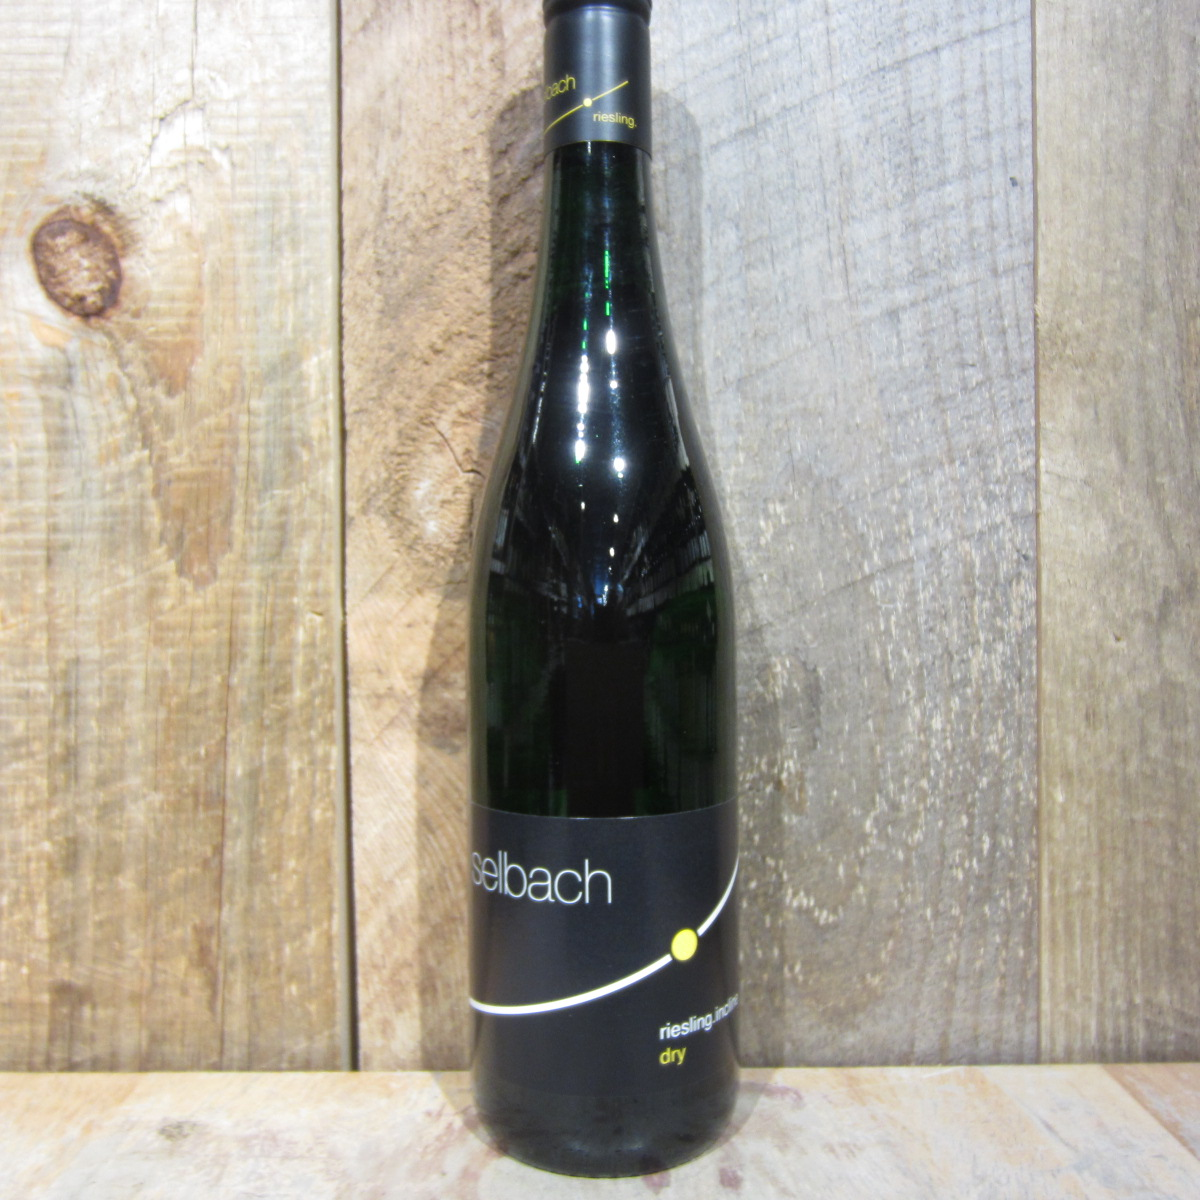 Selbach Incline Dry Riesling 2019 750ml